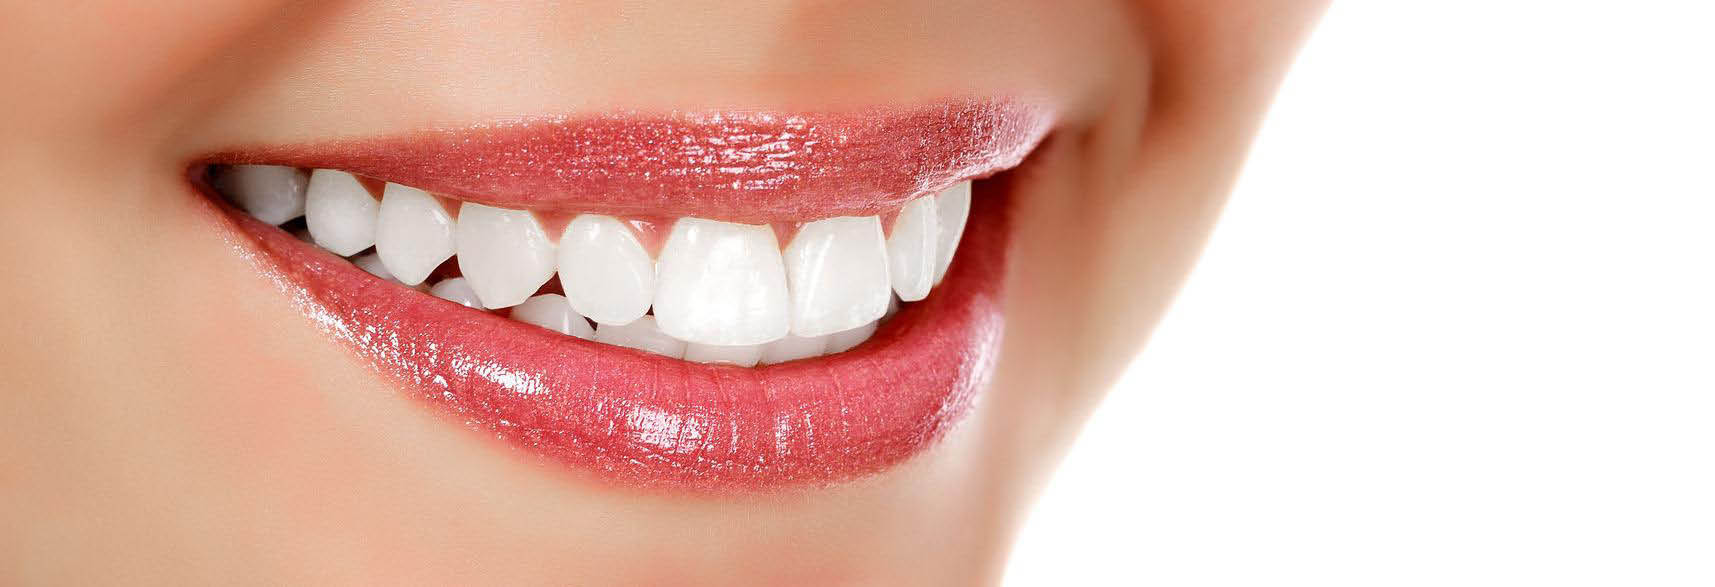 mission smile in mission viejo ca teeth whitening coupons near me